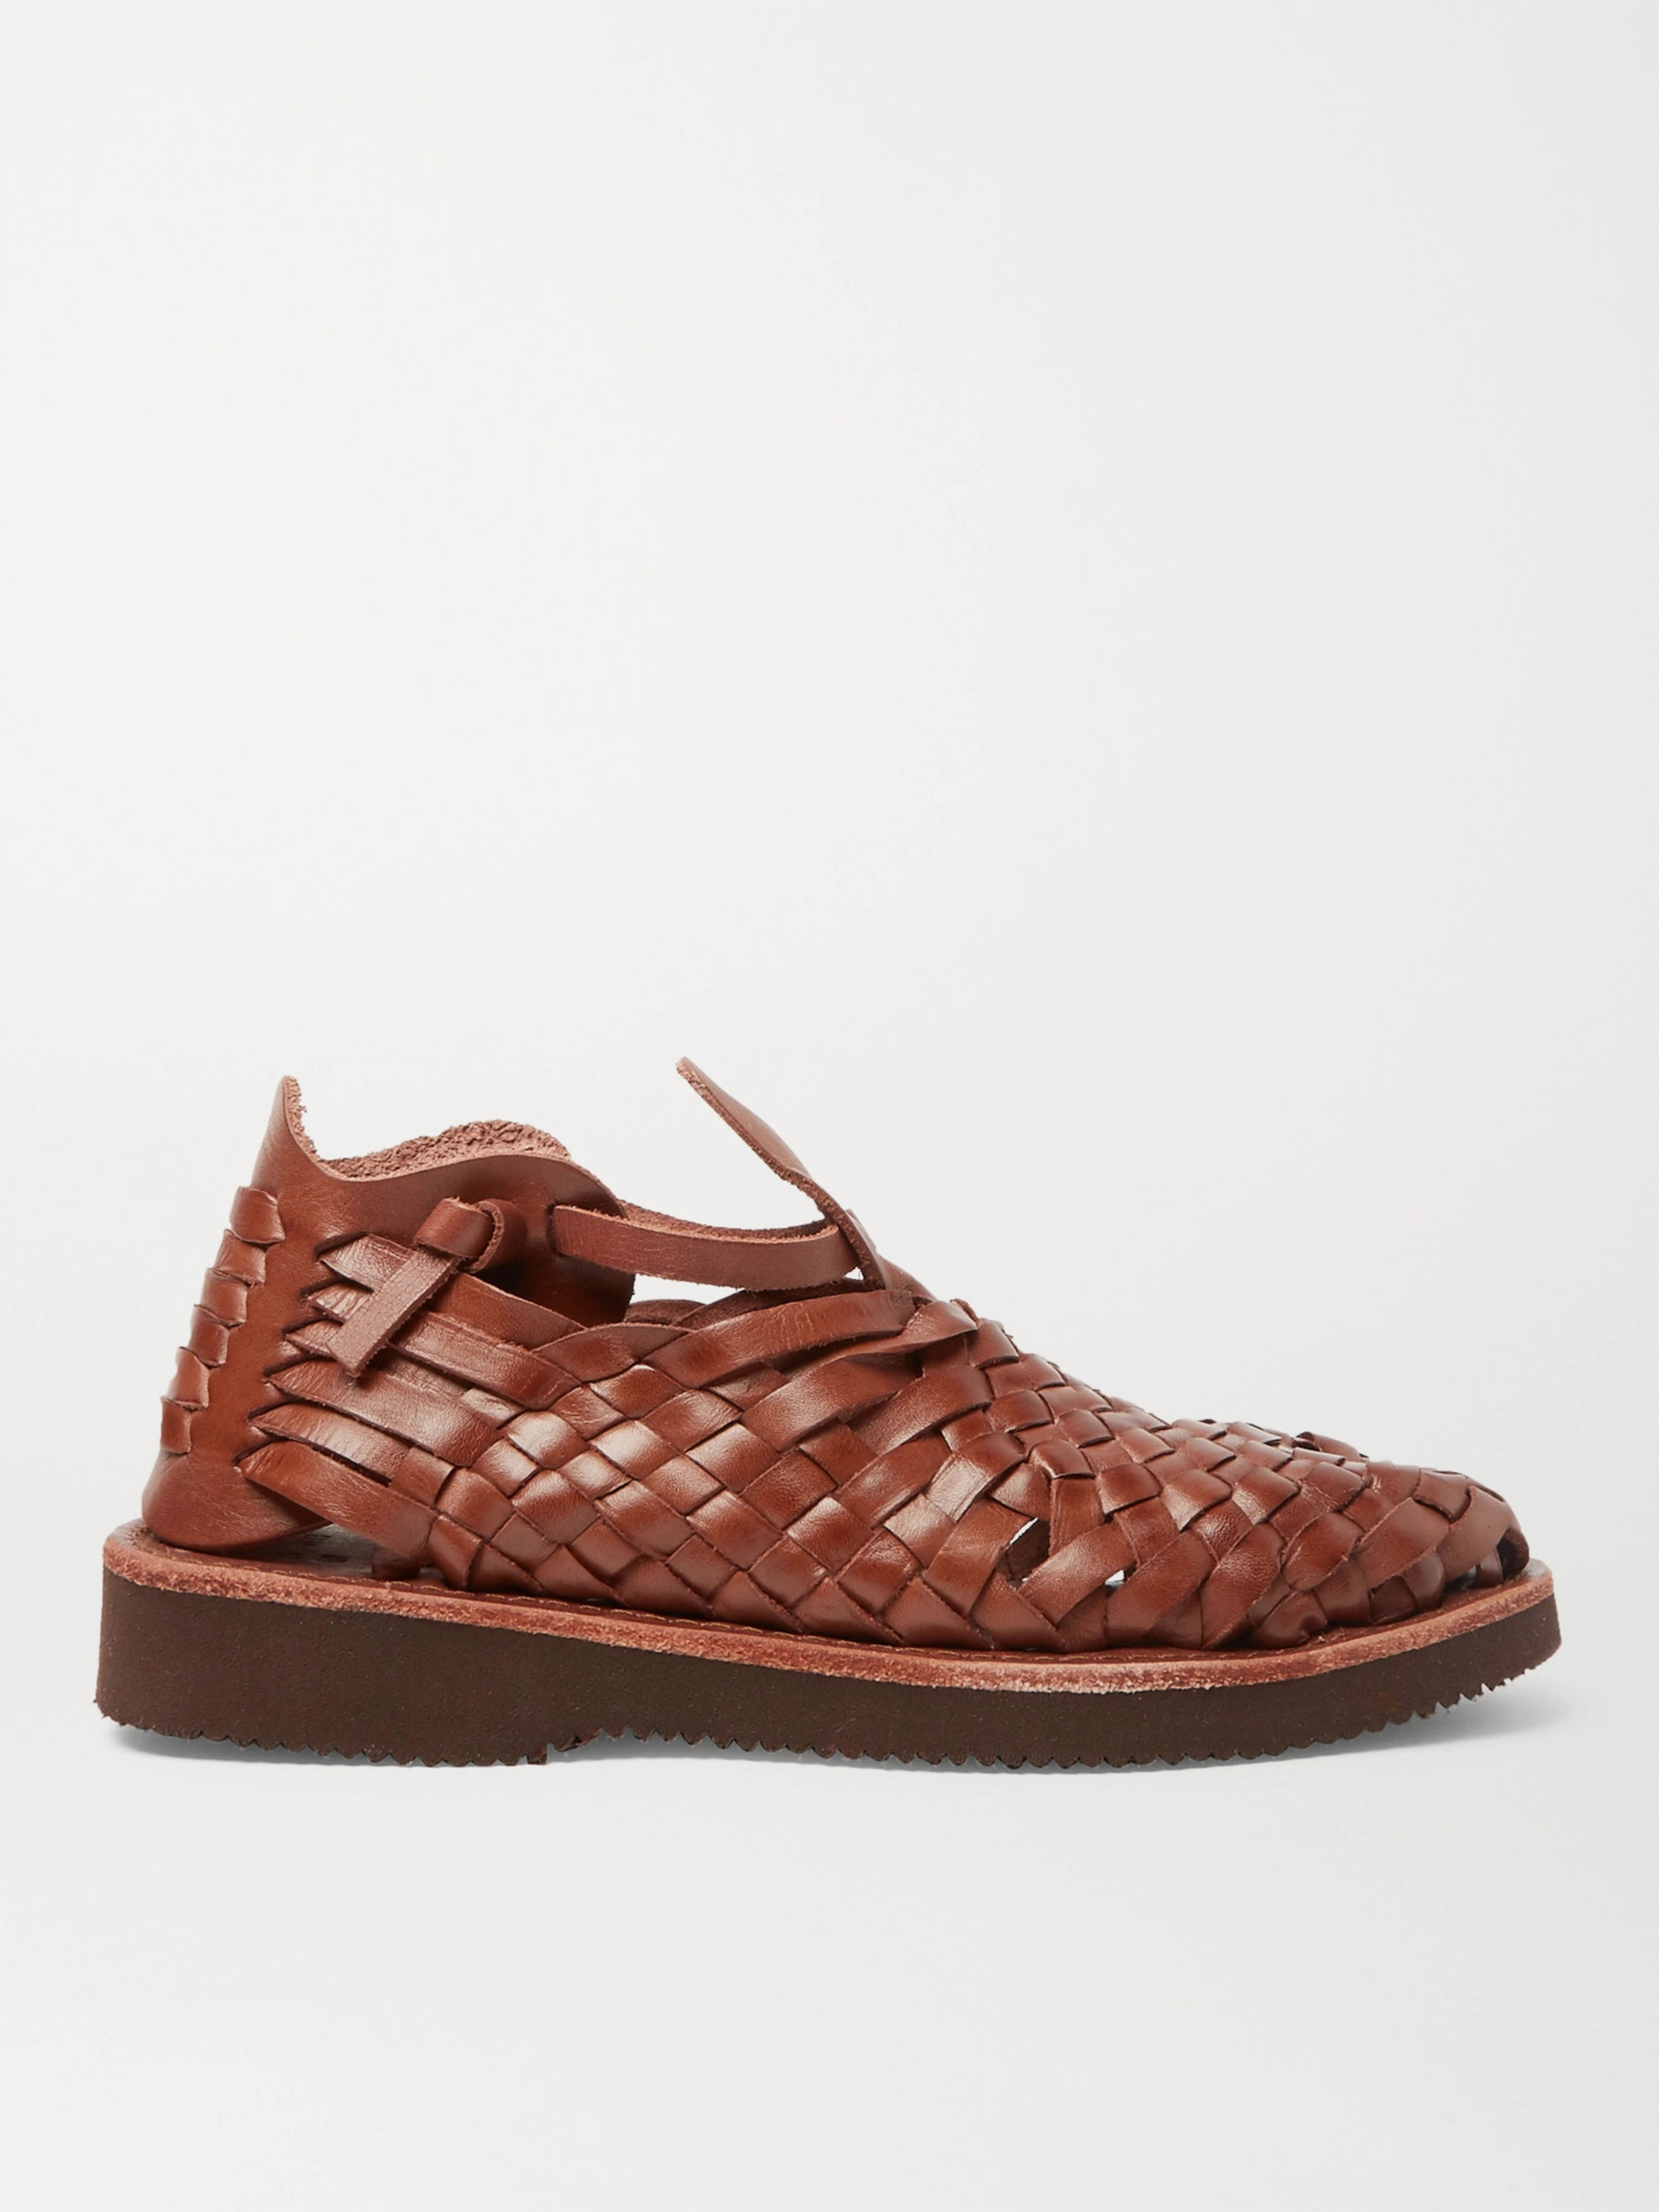 Yuketen Crus Woven Leather Sandals